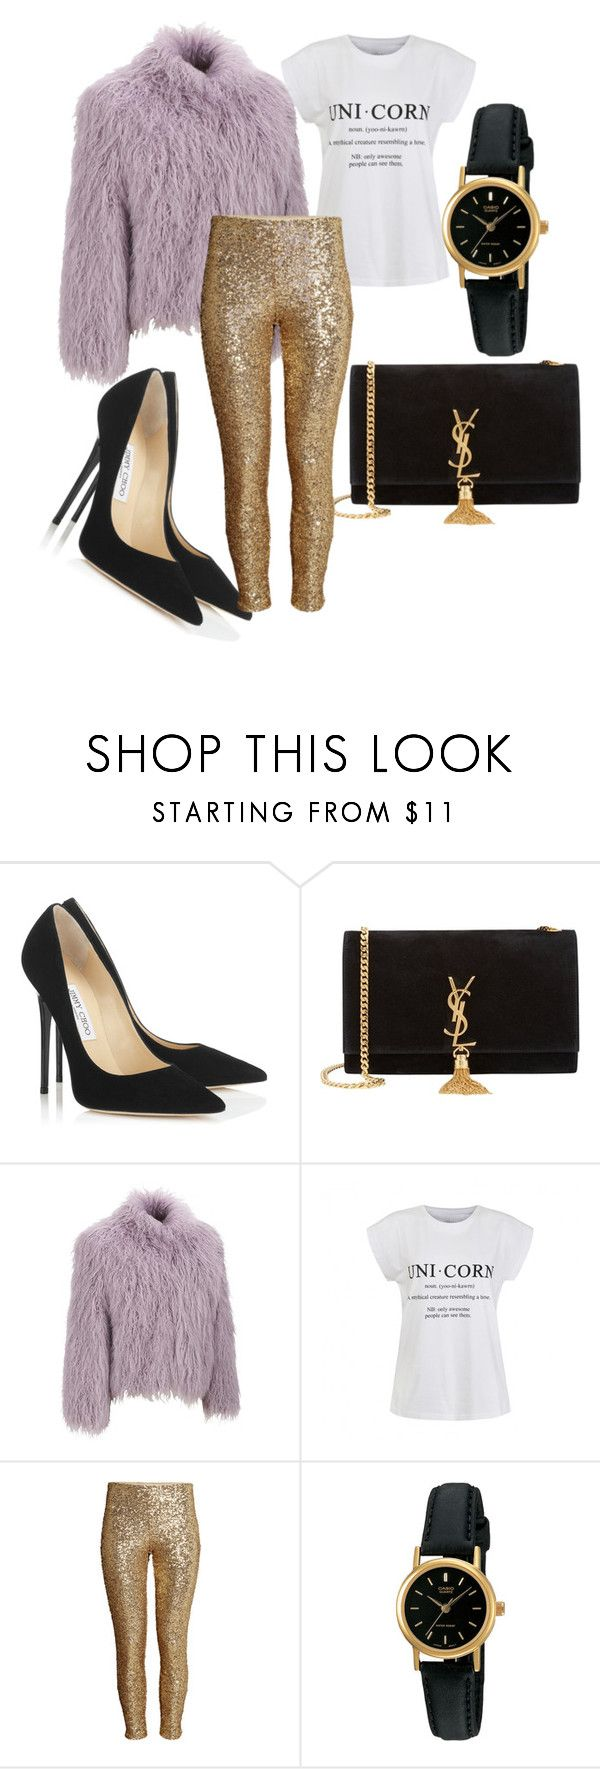 """More is more"" by jiroutconsulting on Polyvore featuring Jimmy Choo, Yves Saint Laurent, Wilsons Leather, Ally Fashion, H&M and Casio"